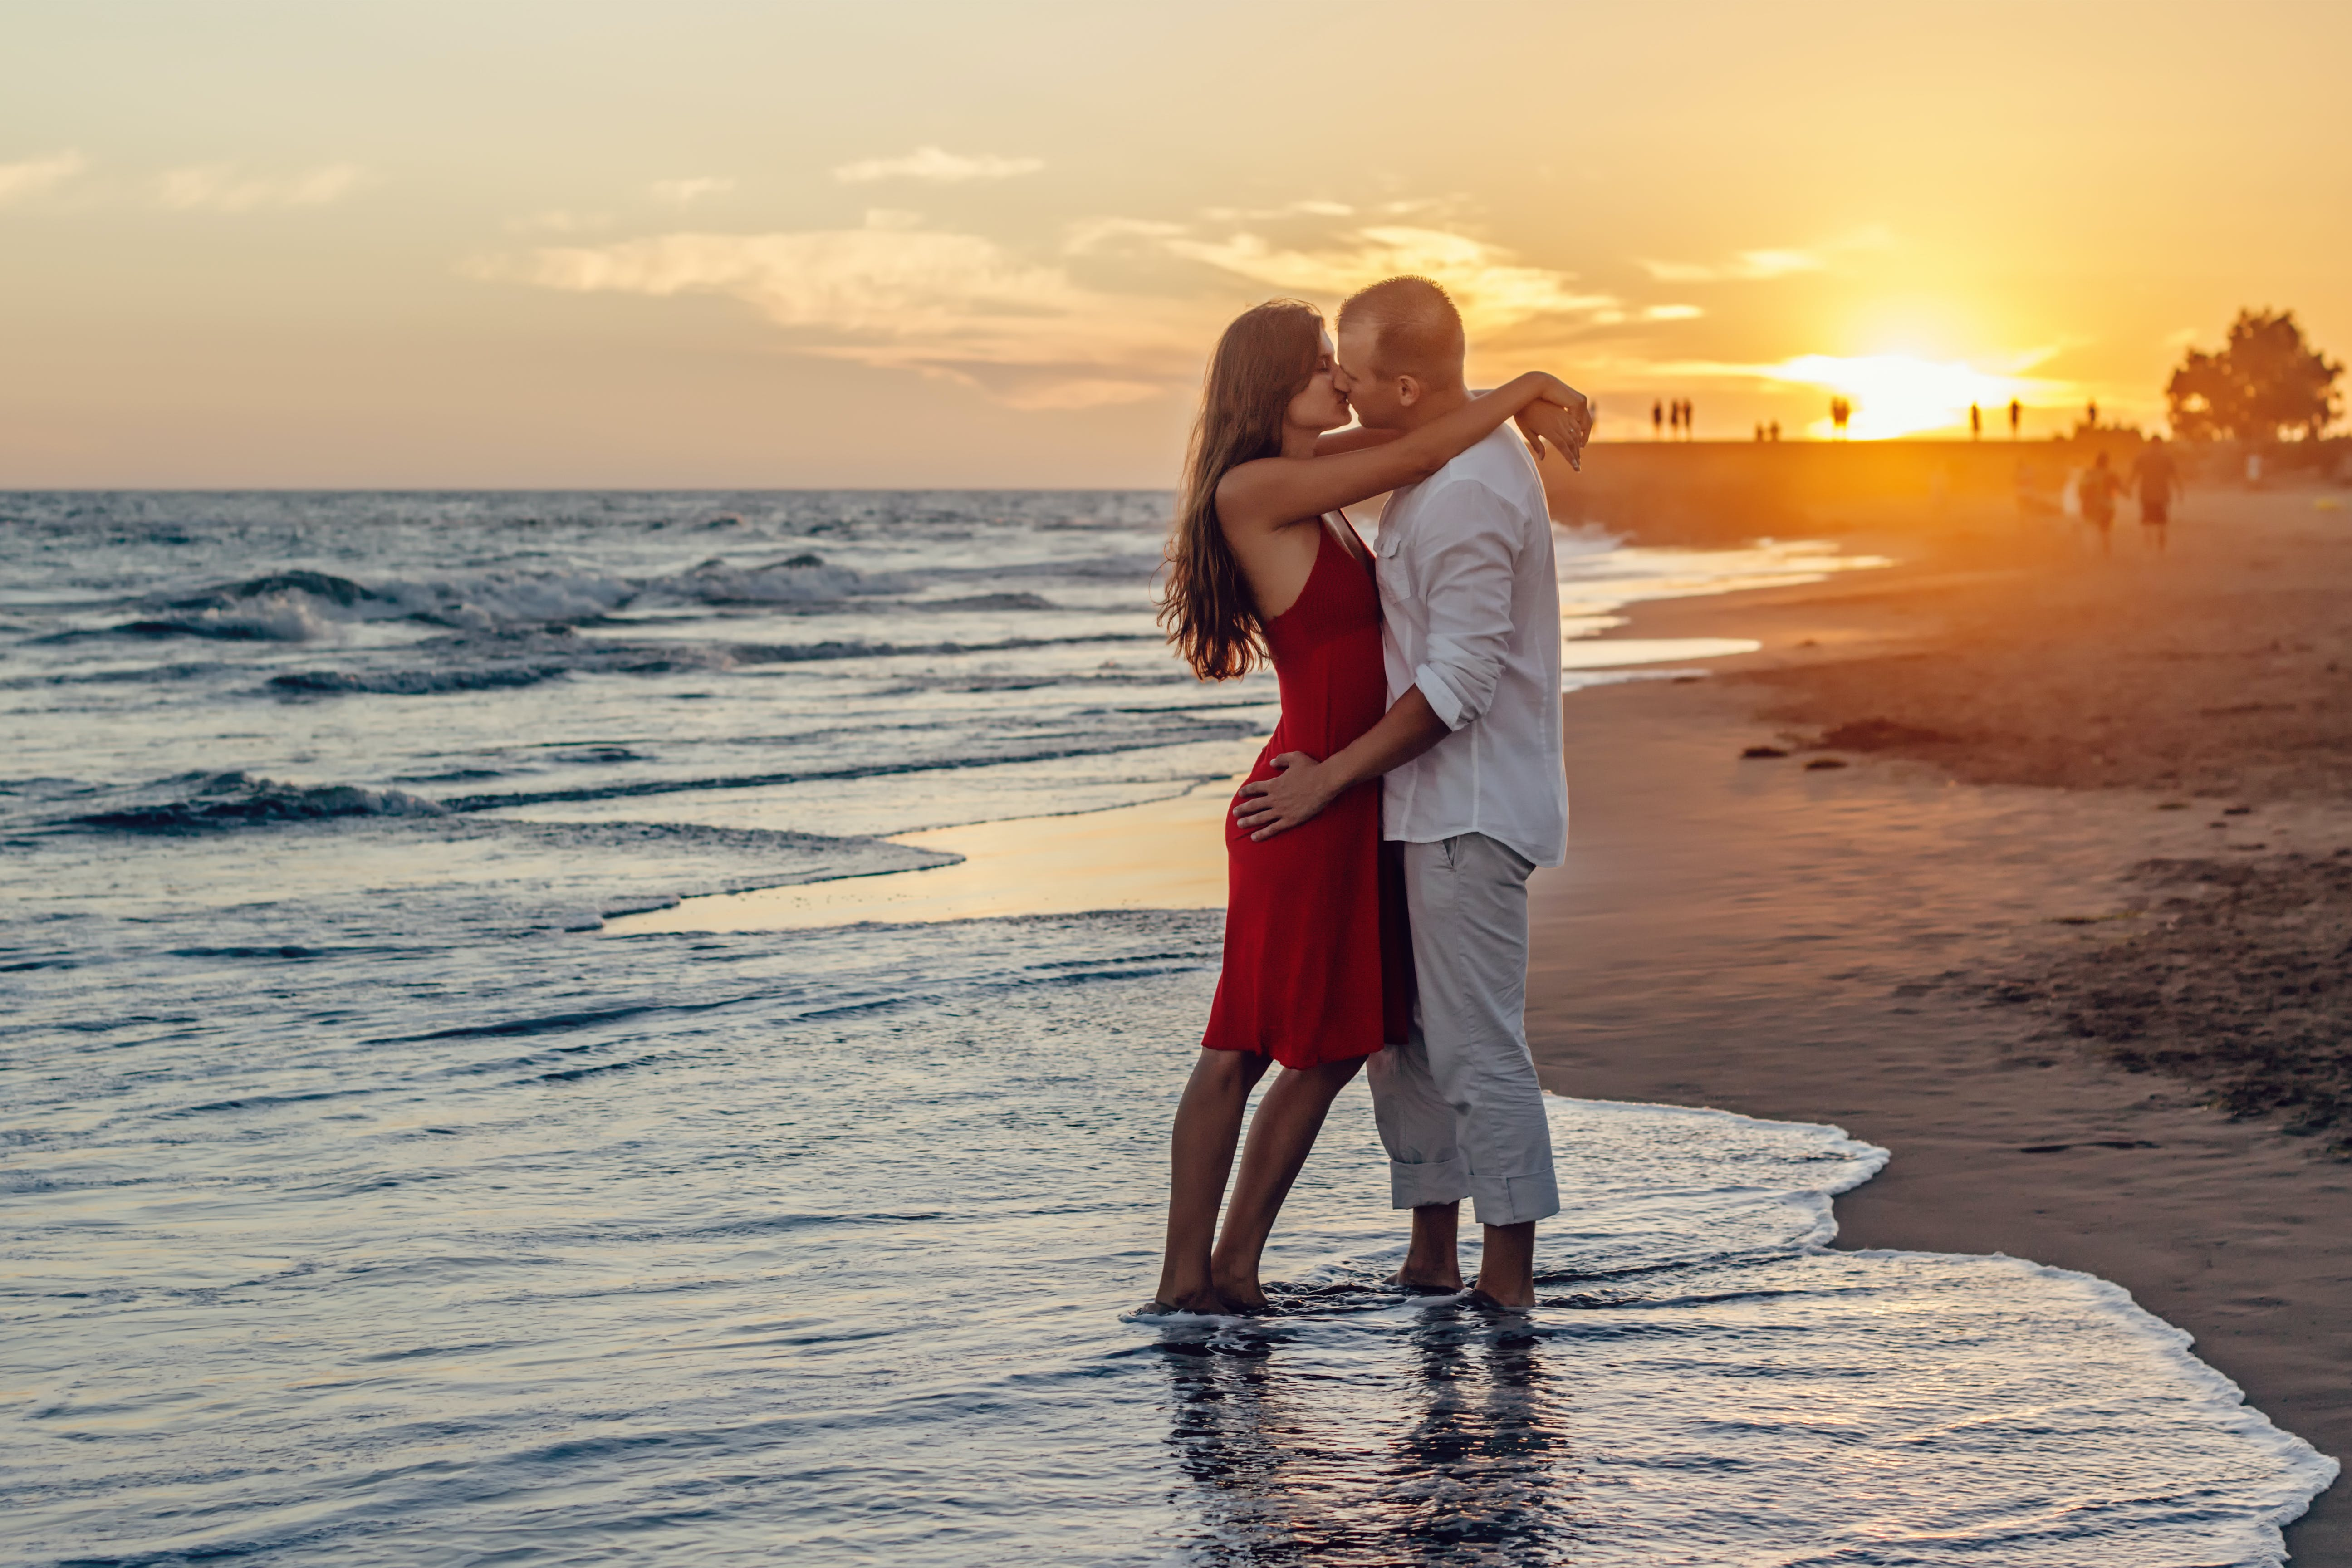 Couple Kissing on Beach during Golden Hour